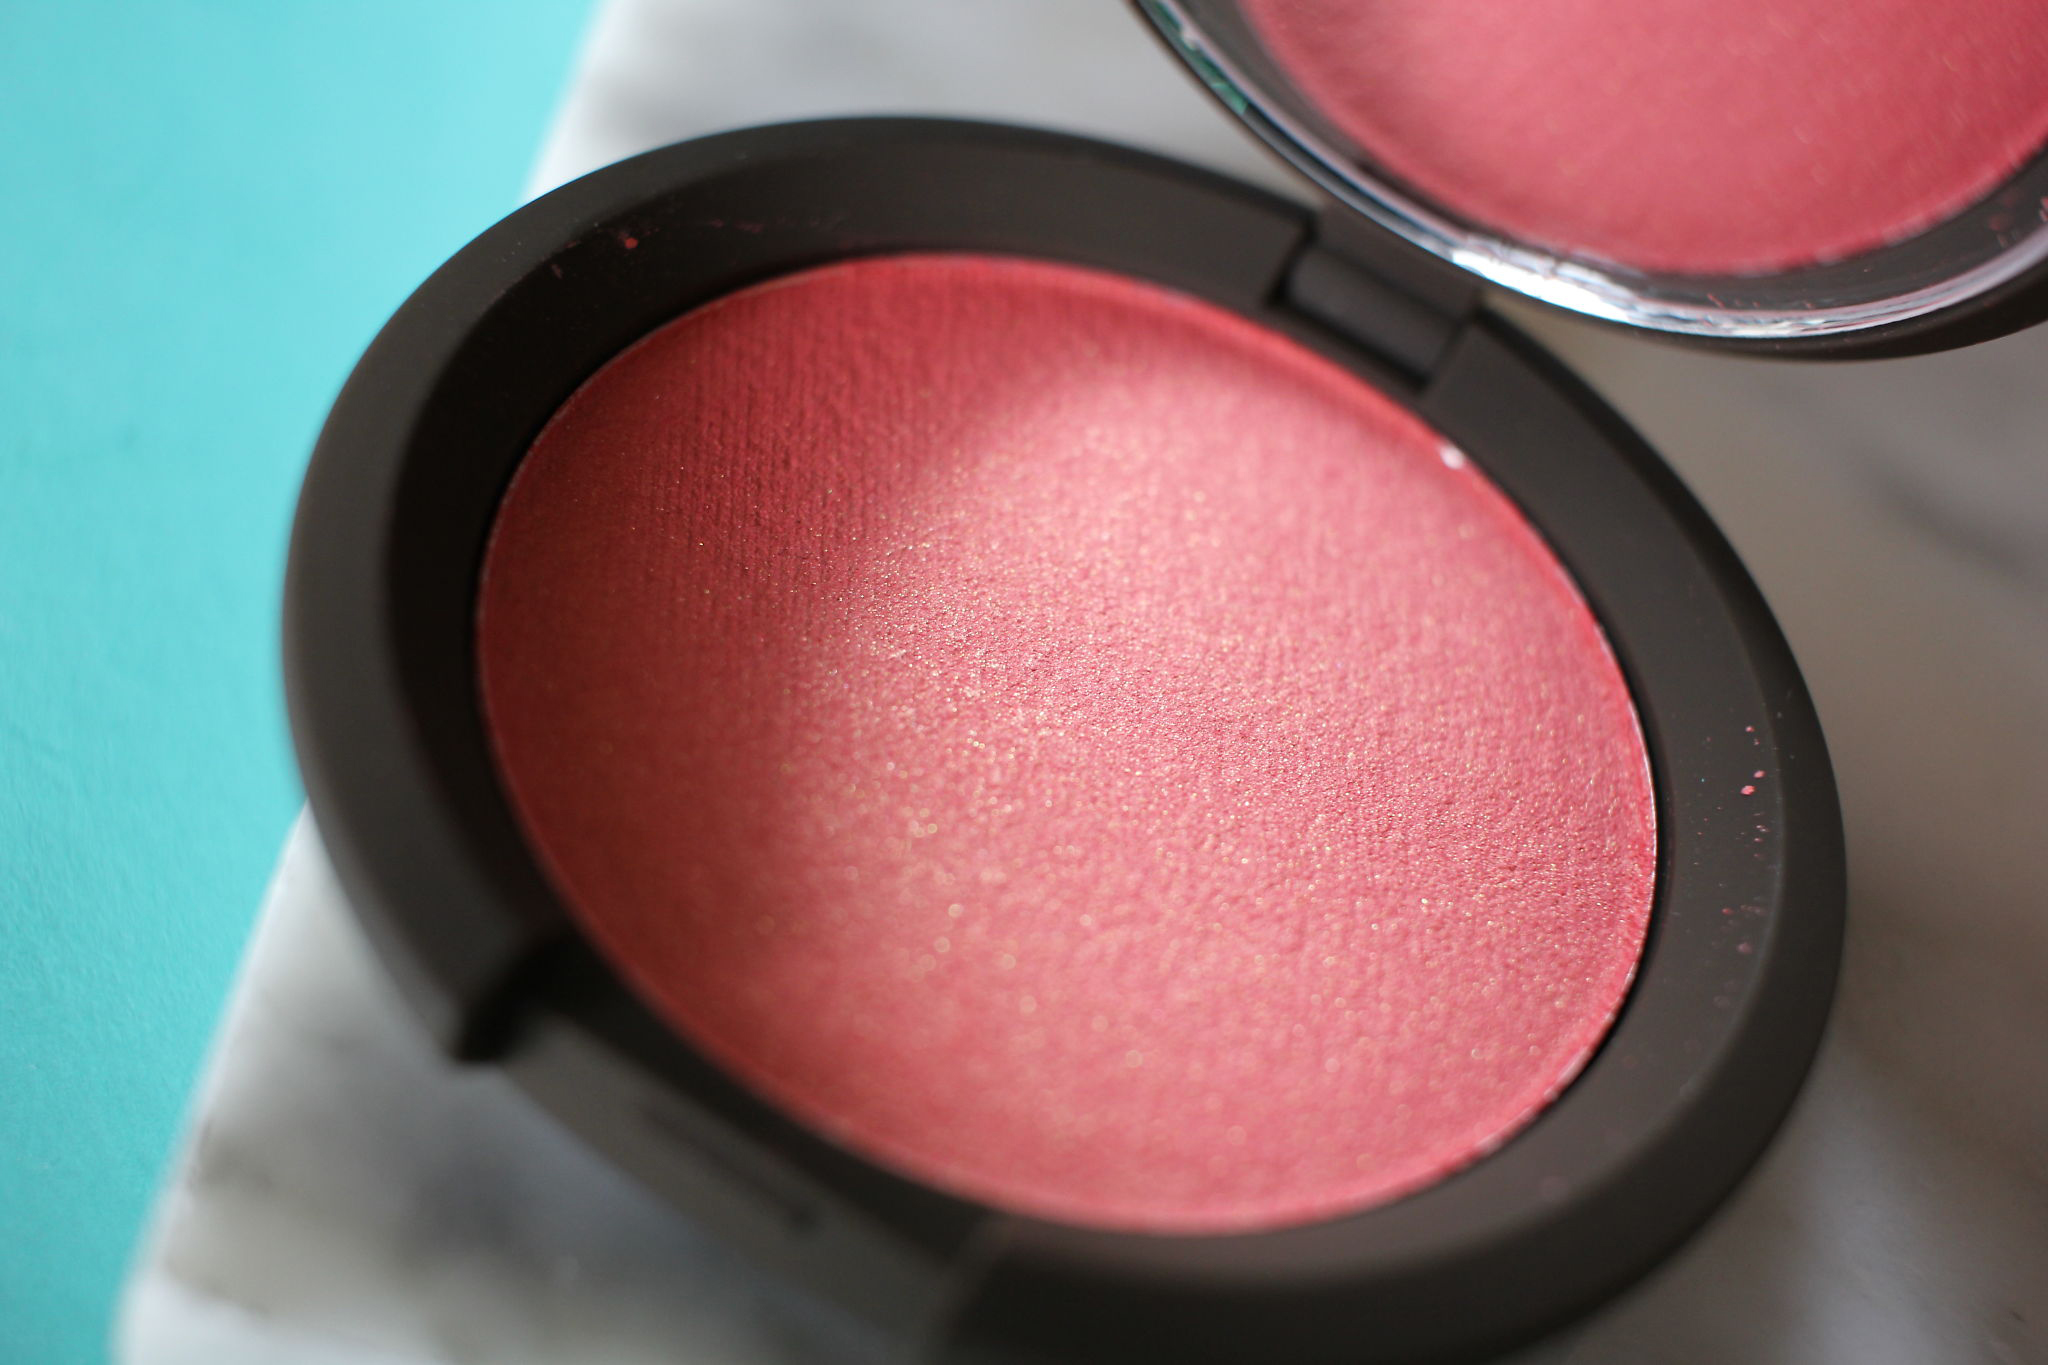 Becca Skin Perfector Luminous Blush picture